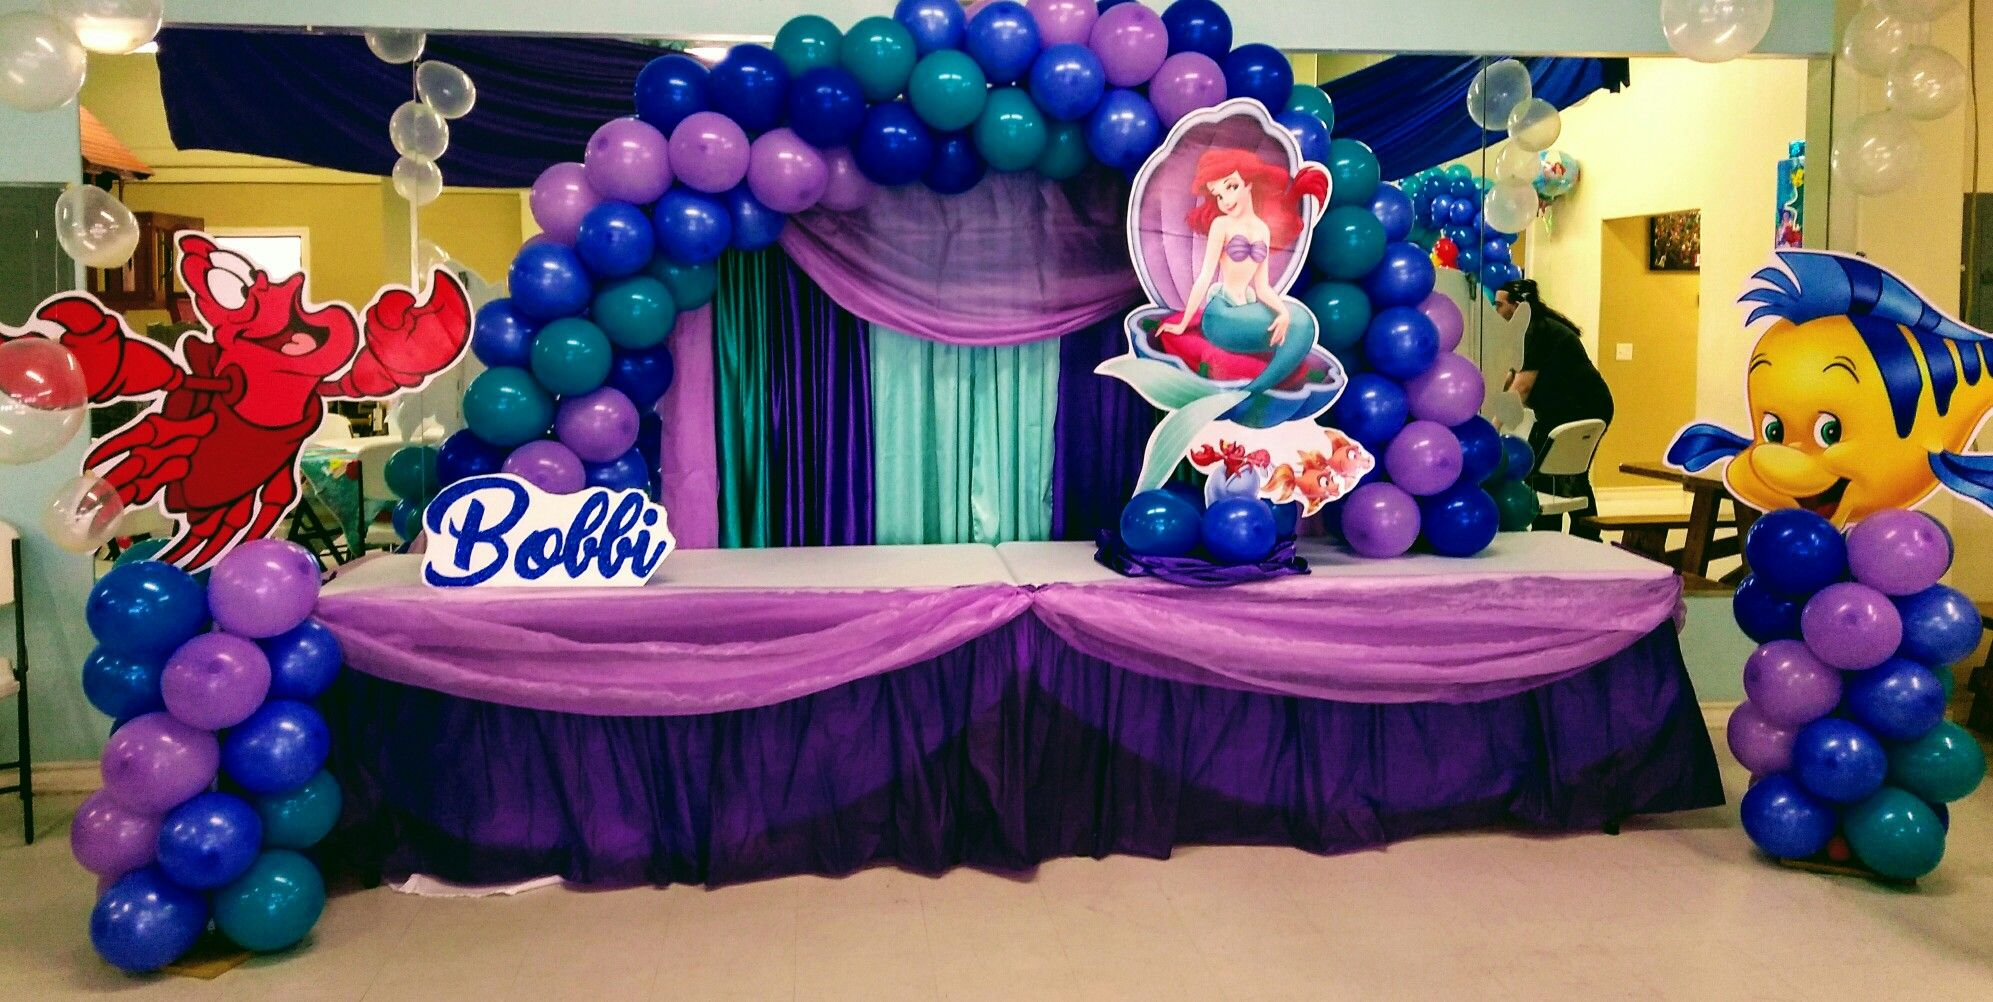 Little Mermaid Theme Birthday Party Balloon Arch And Pillars Blue Sky Party P Mermaid Theme Birthday Little Mermaid Centerpieces Mermaid Theme Birthday Party